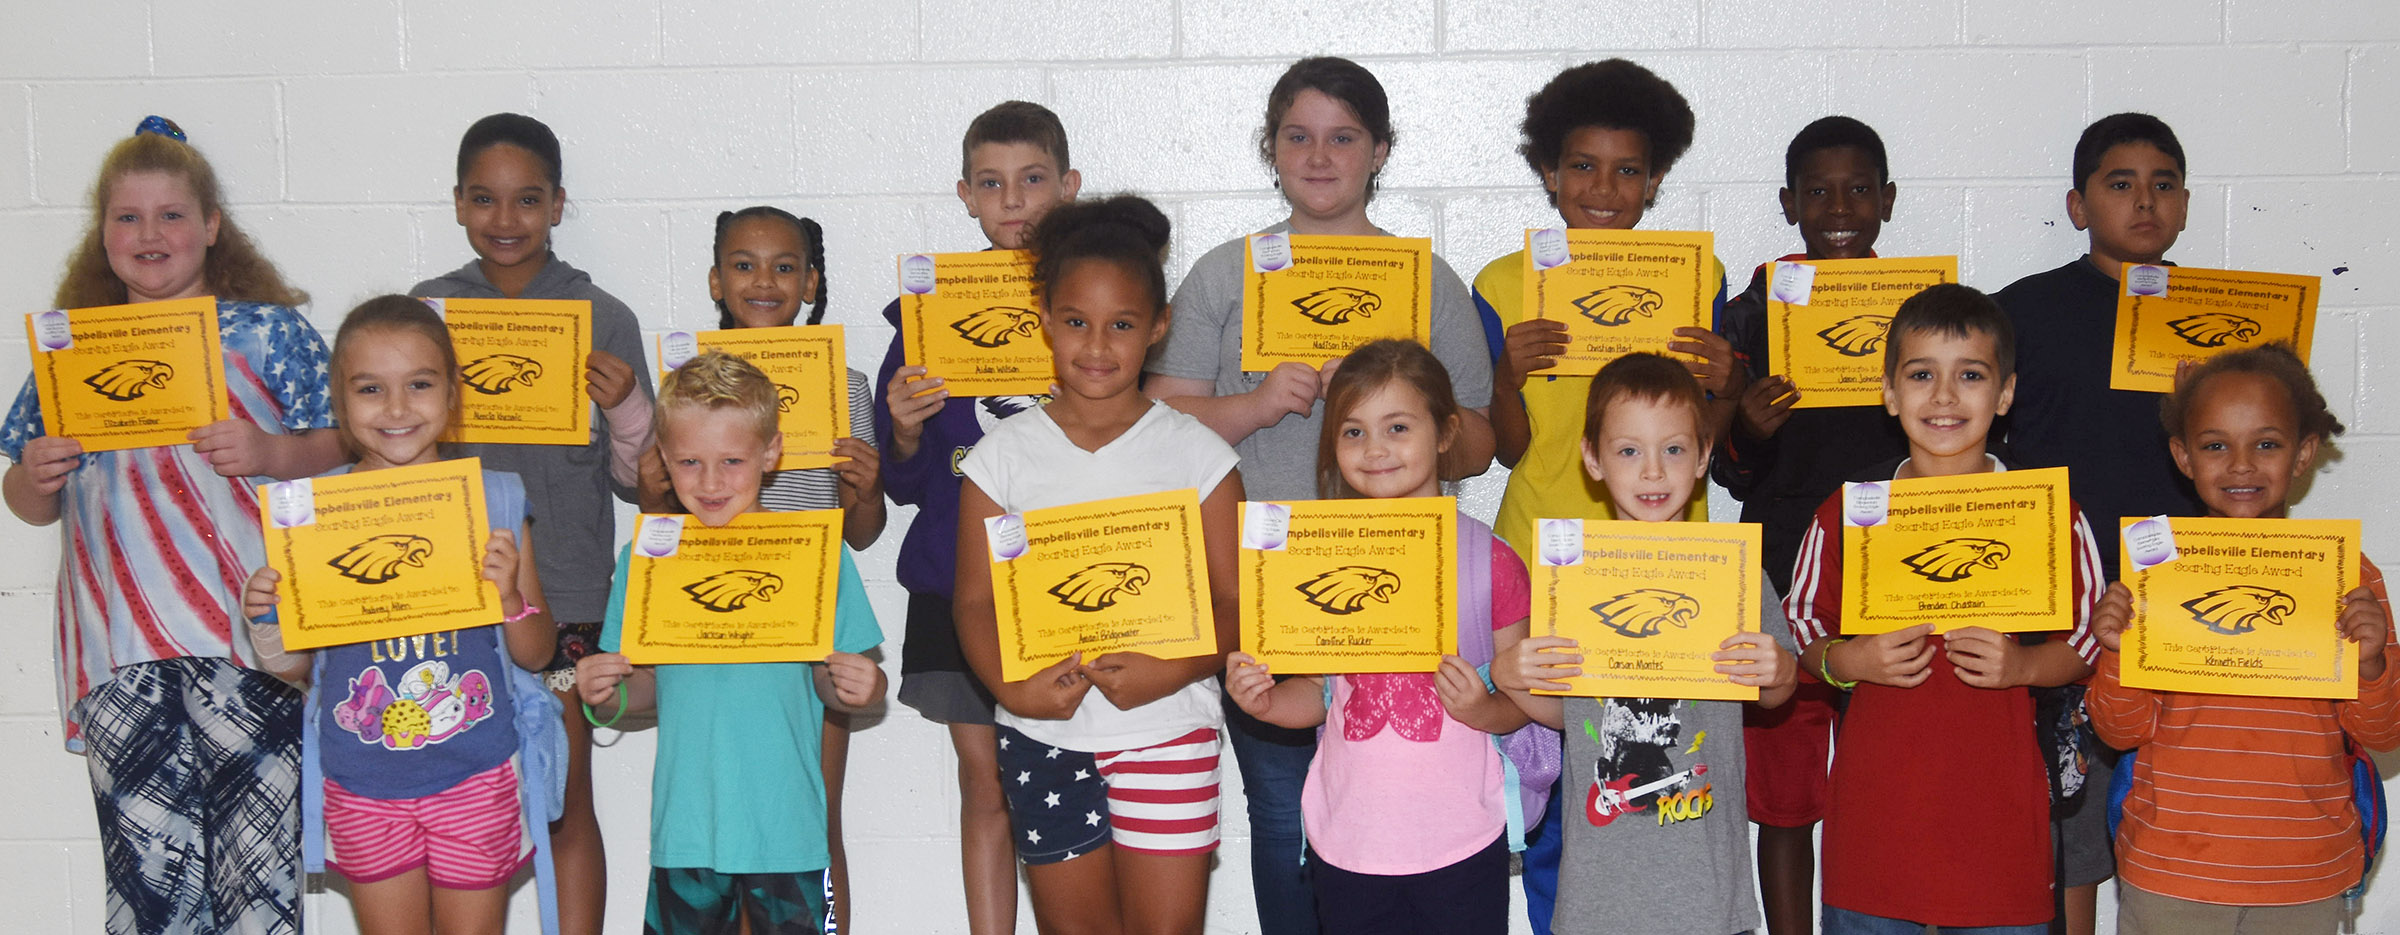 From left, front, are second-grader Aubrey Allen, first-grader Jackson Wright, third-grader Amani Bridgewater, kindergartener Caroline Rucker, second-grader Carson Montes, third-grader Brenden Chastain and kindergartener K.J. Fields. Back, third-grader Elizabeth Foster, fifth-grader Aleecia Knezevic, fourth-graders Alexia Howard and Aidan Wilson, fifth-graders Madison Philpott and Christian Hart, fourth-grader Jaron Johnson and fifth-grader Cody Tamez. Absent from the photo are kindergartener Bentley Cox, first-graders Courtney Gilbert and Samuel Terry and third-grader Zach Hak.